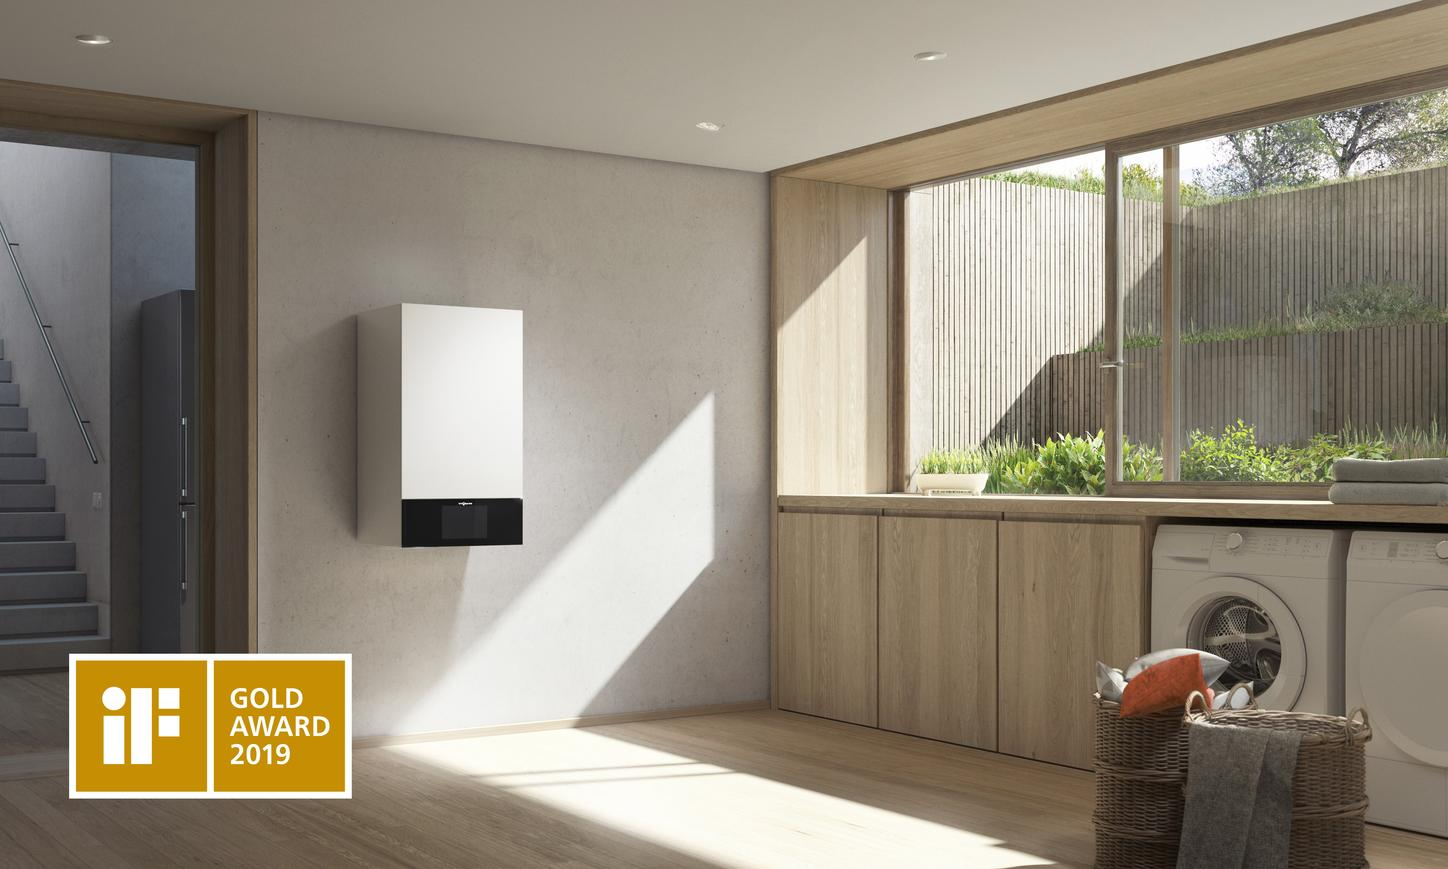 The picture shows the Vitodens 300-W from Viessmann.